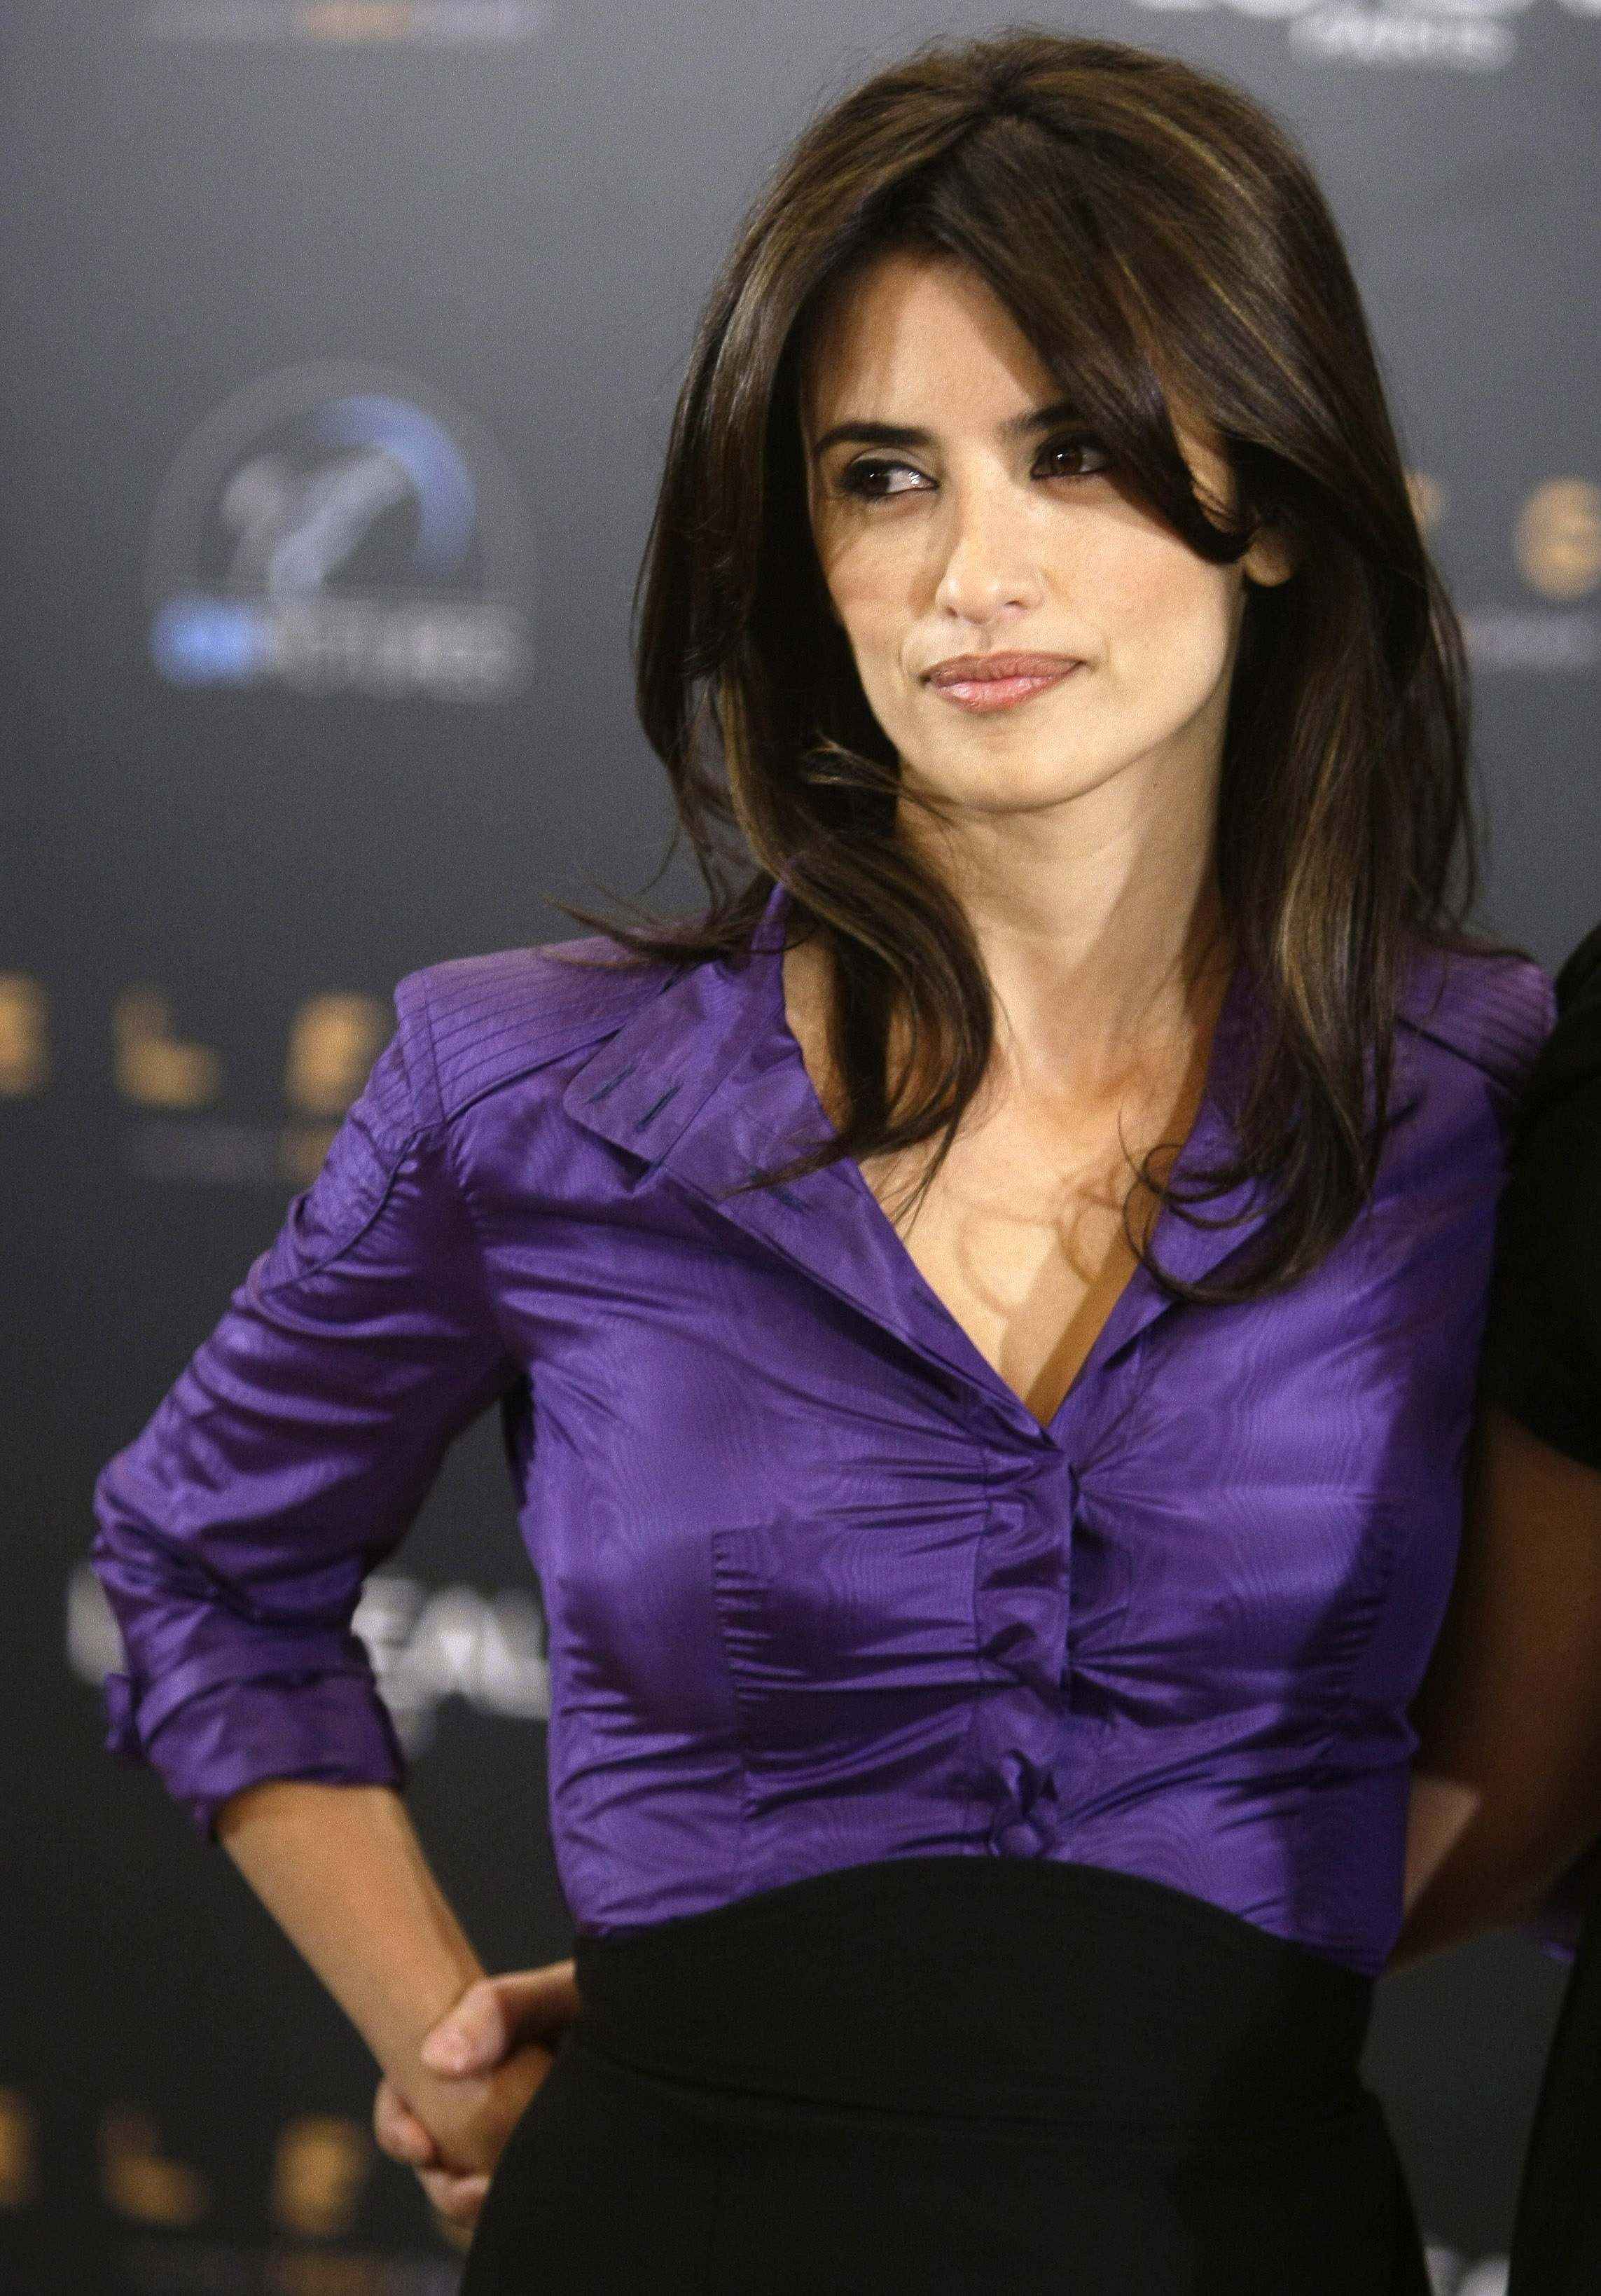 penelope cruz scandal